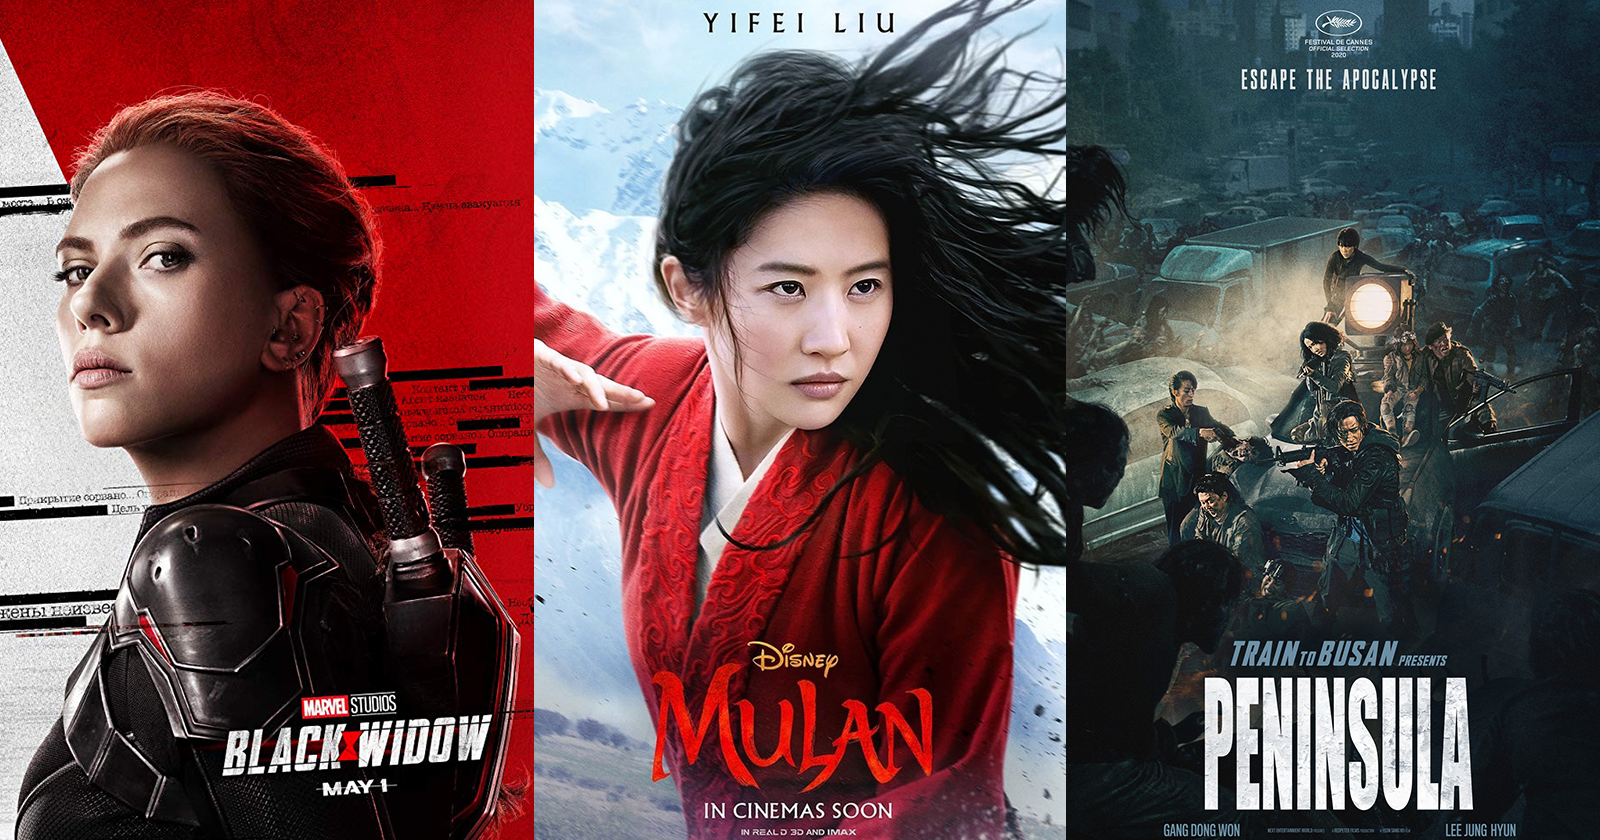 7 New Movies in 2020 You Must Watch Including Mulan, Black Widow, and Top Gun: Maverick